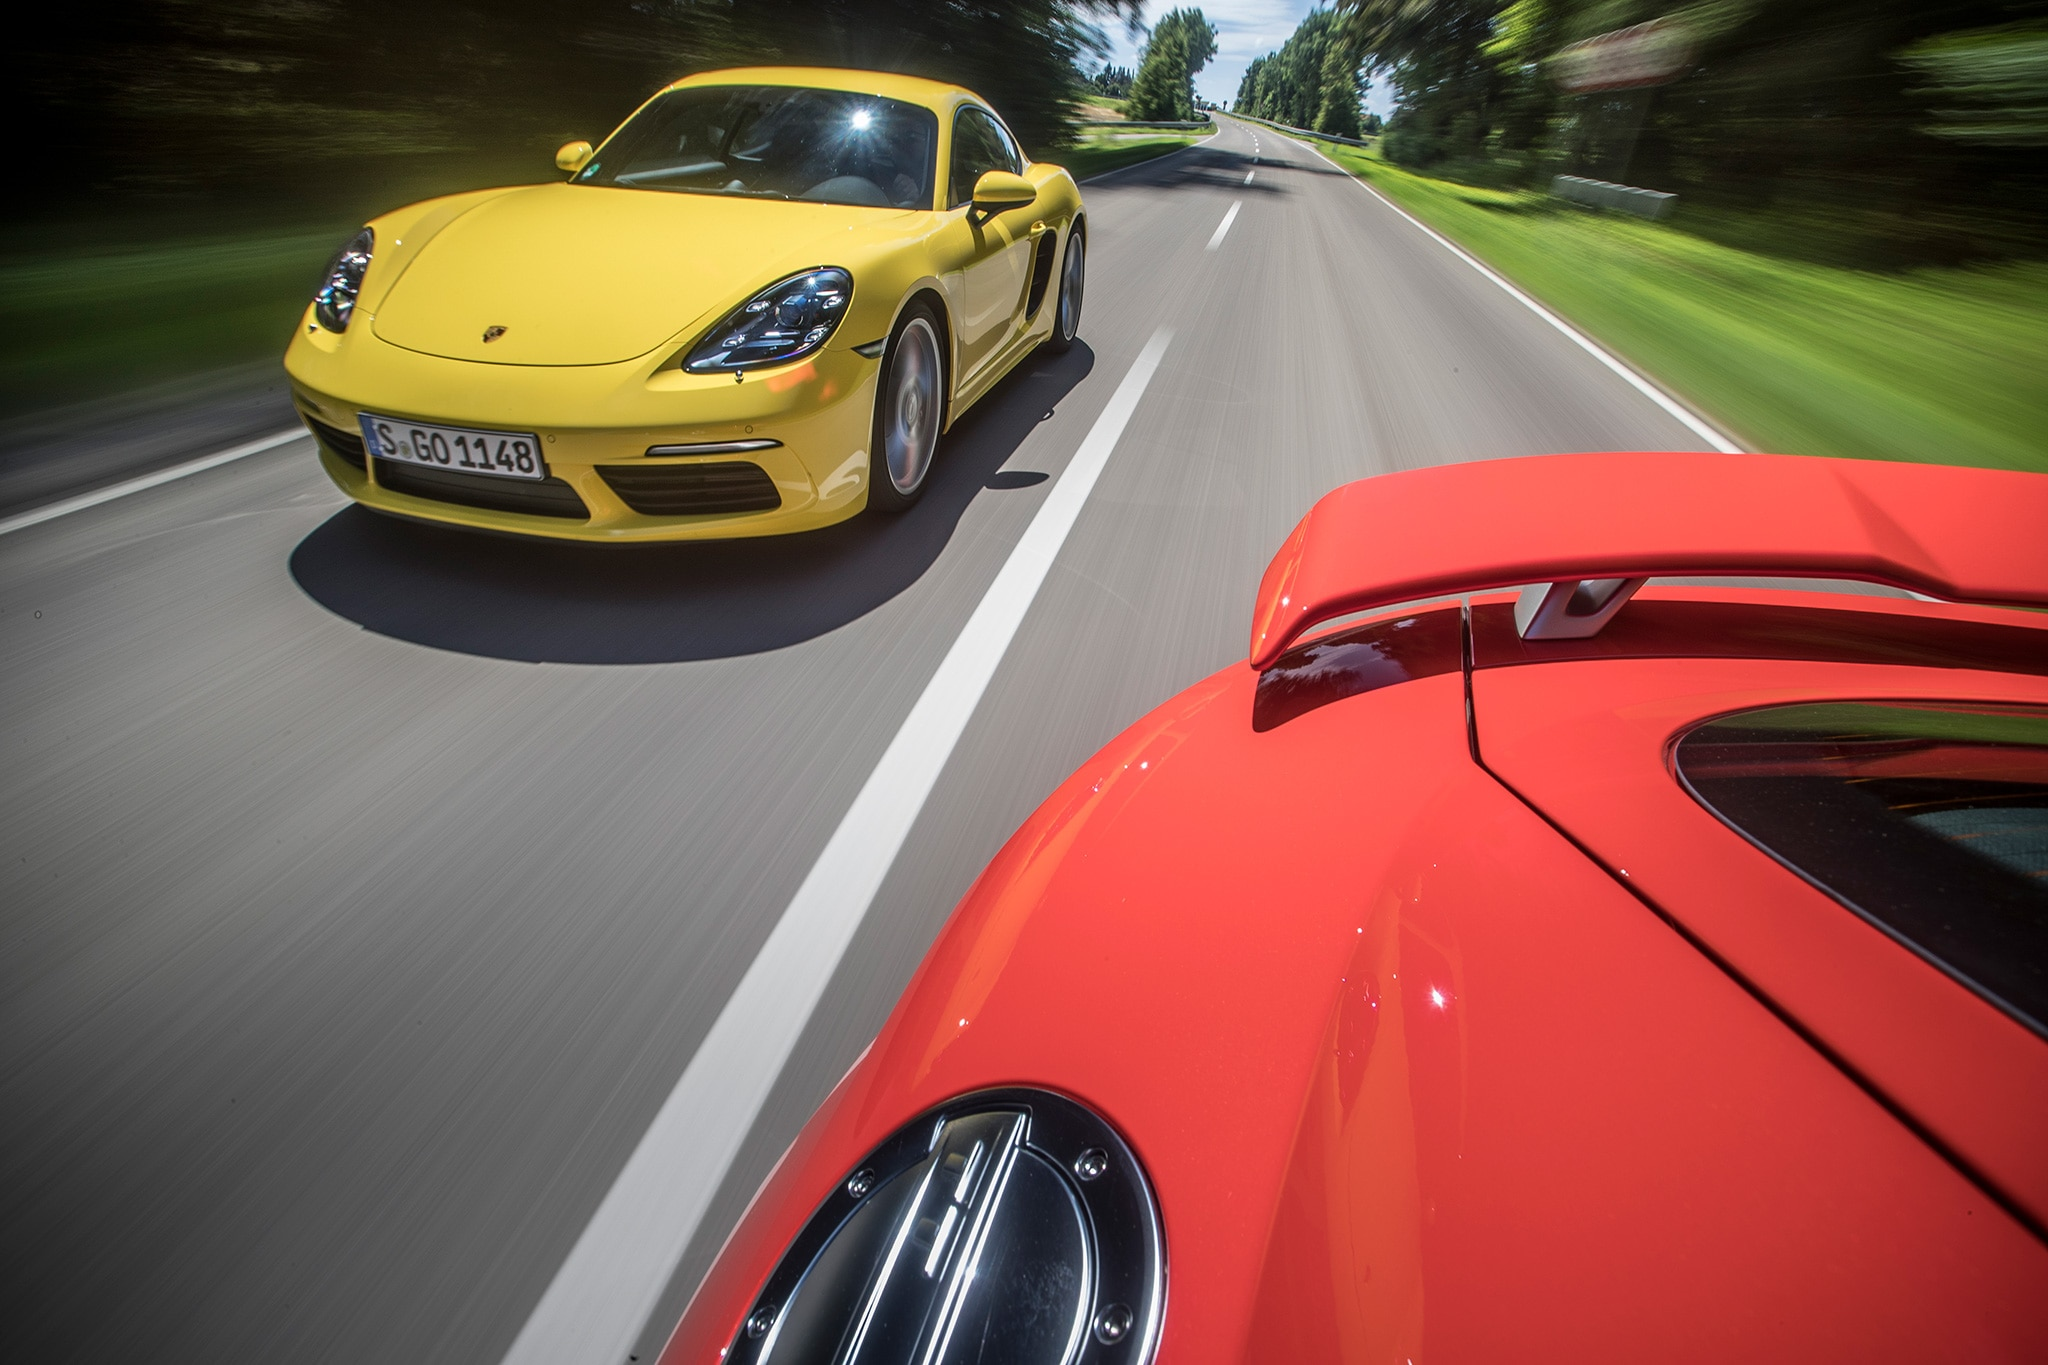 2018 Audi TT RS Vs 2017 Porsche Cayman S 08